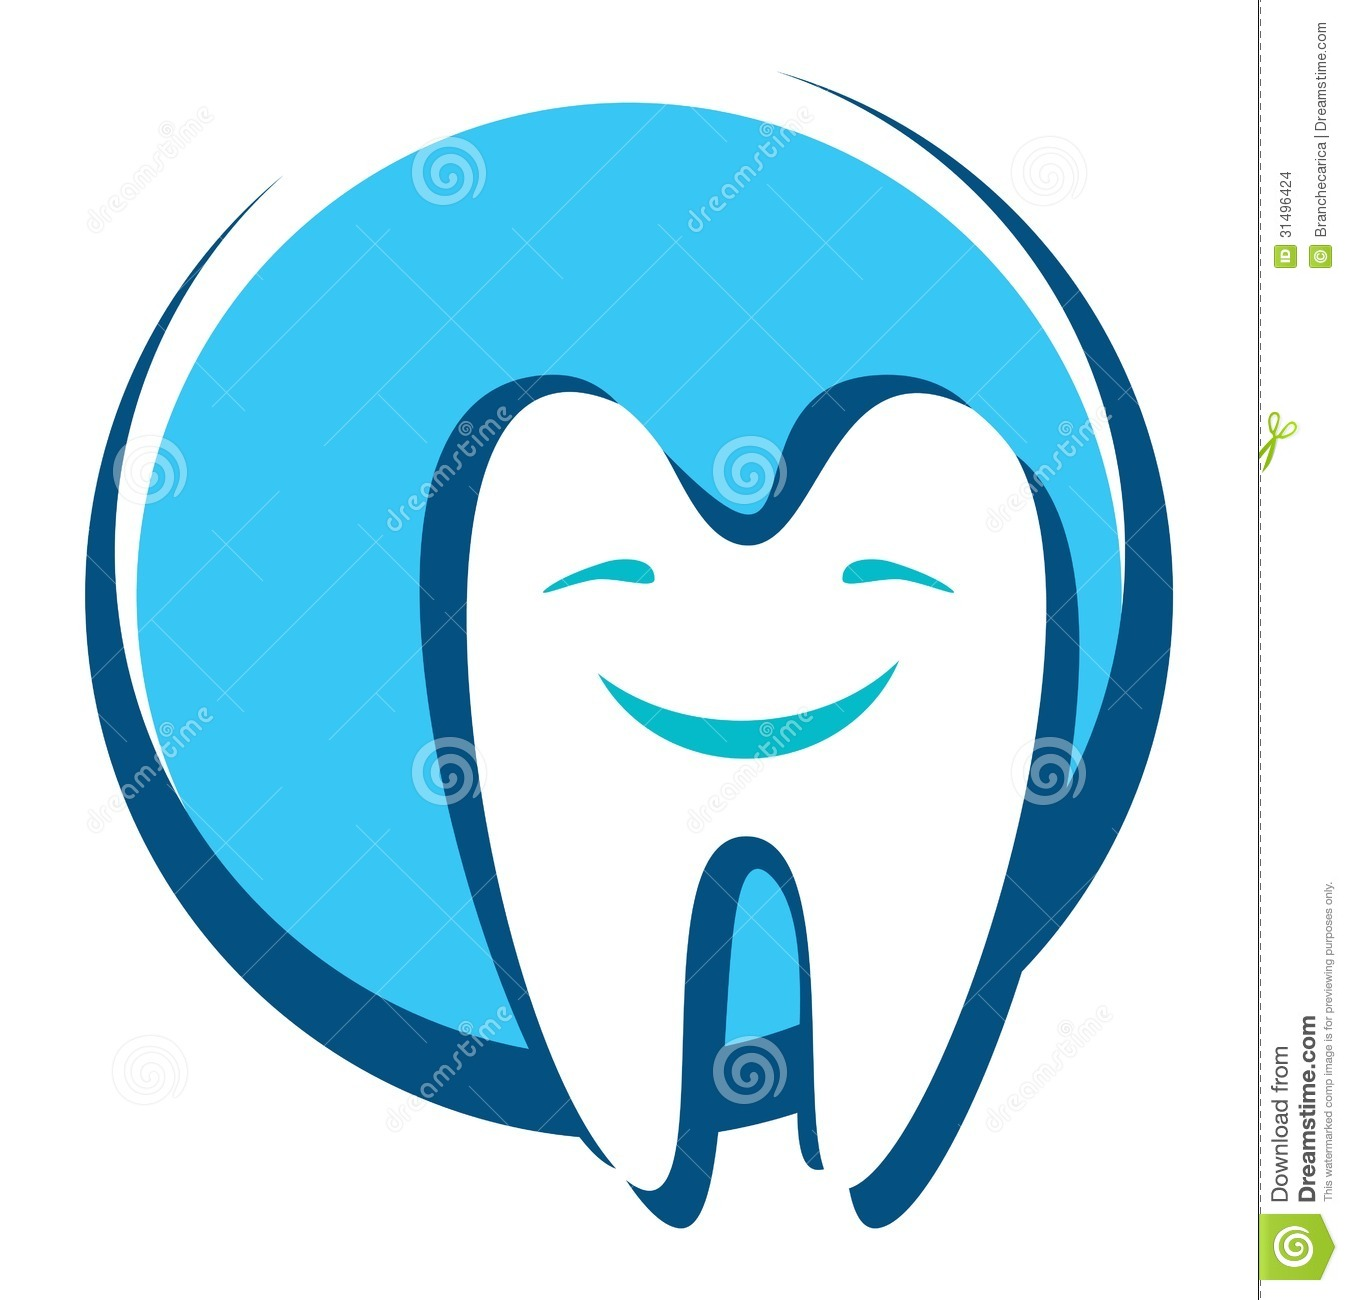 Dental Icon Stock Images - Image: 31496424